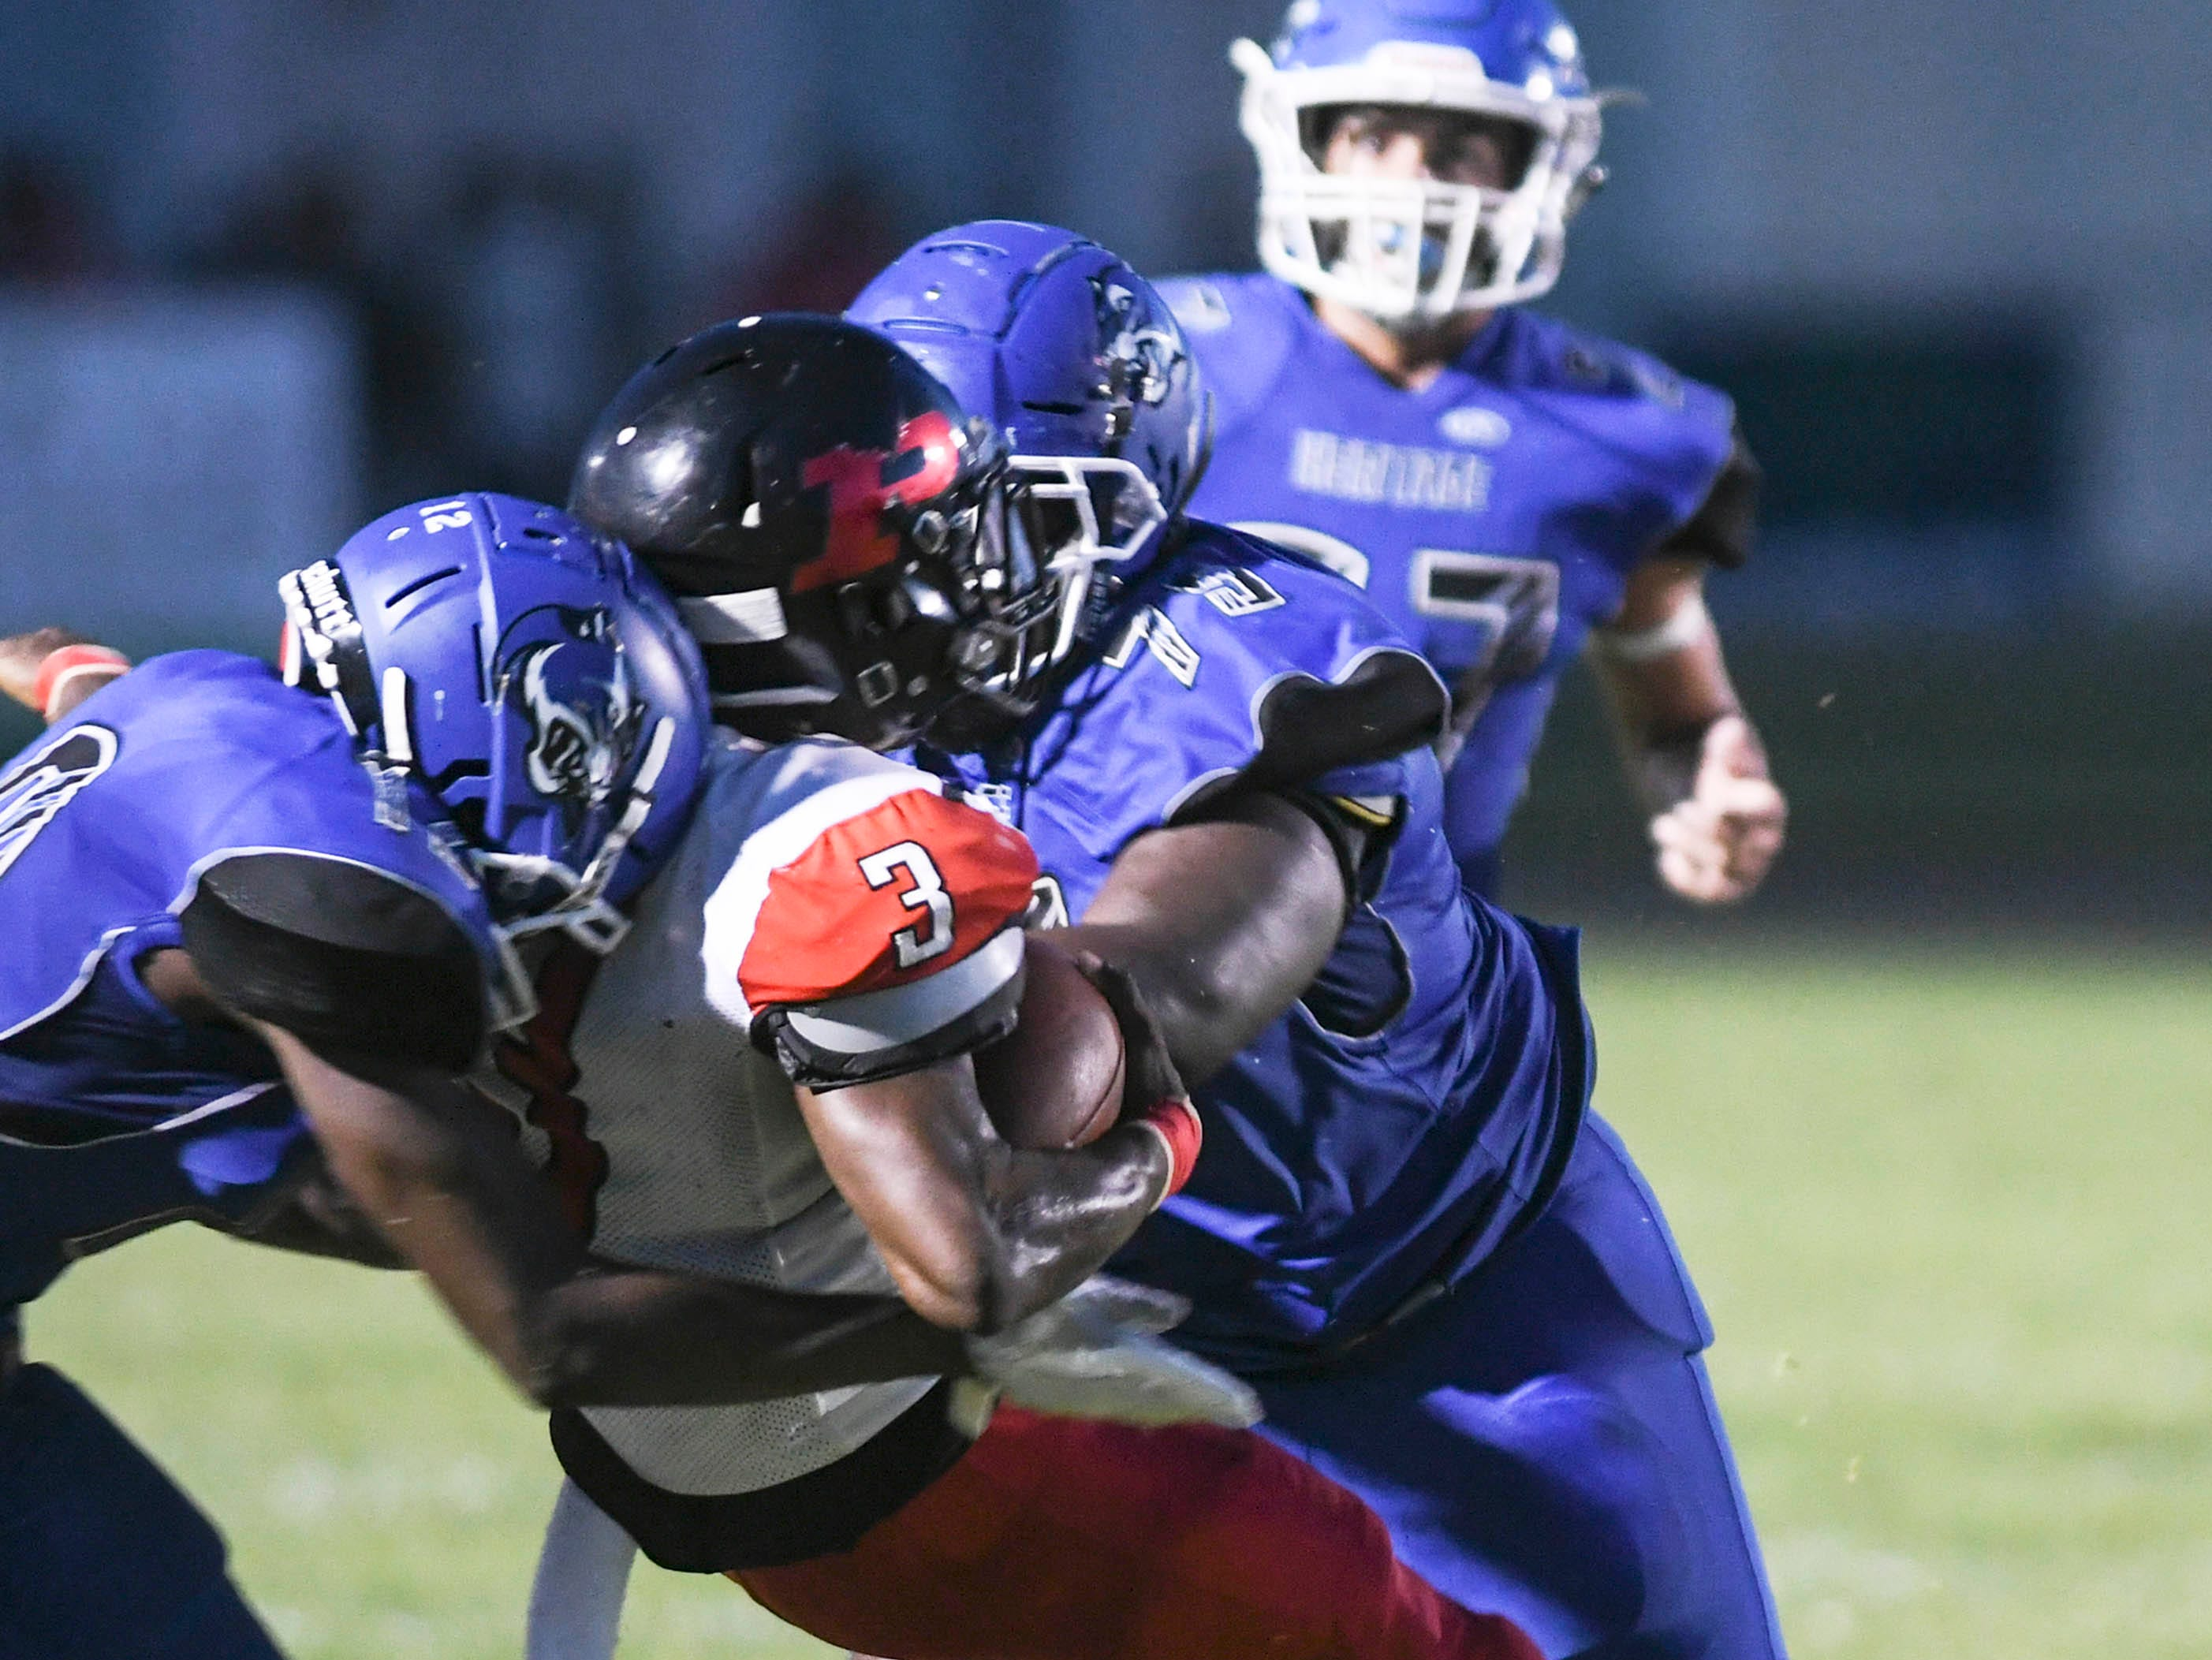 Terrion Howard and Matthew Hall of Heritage take down Palm Bay QB Jaheim Mayes during Friday's game.